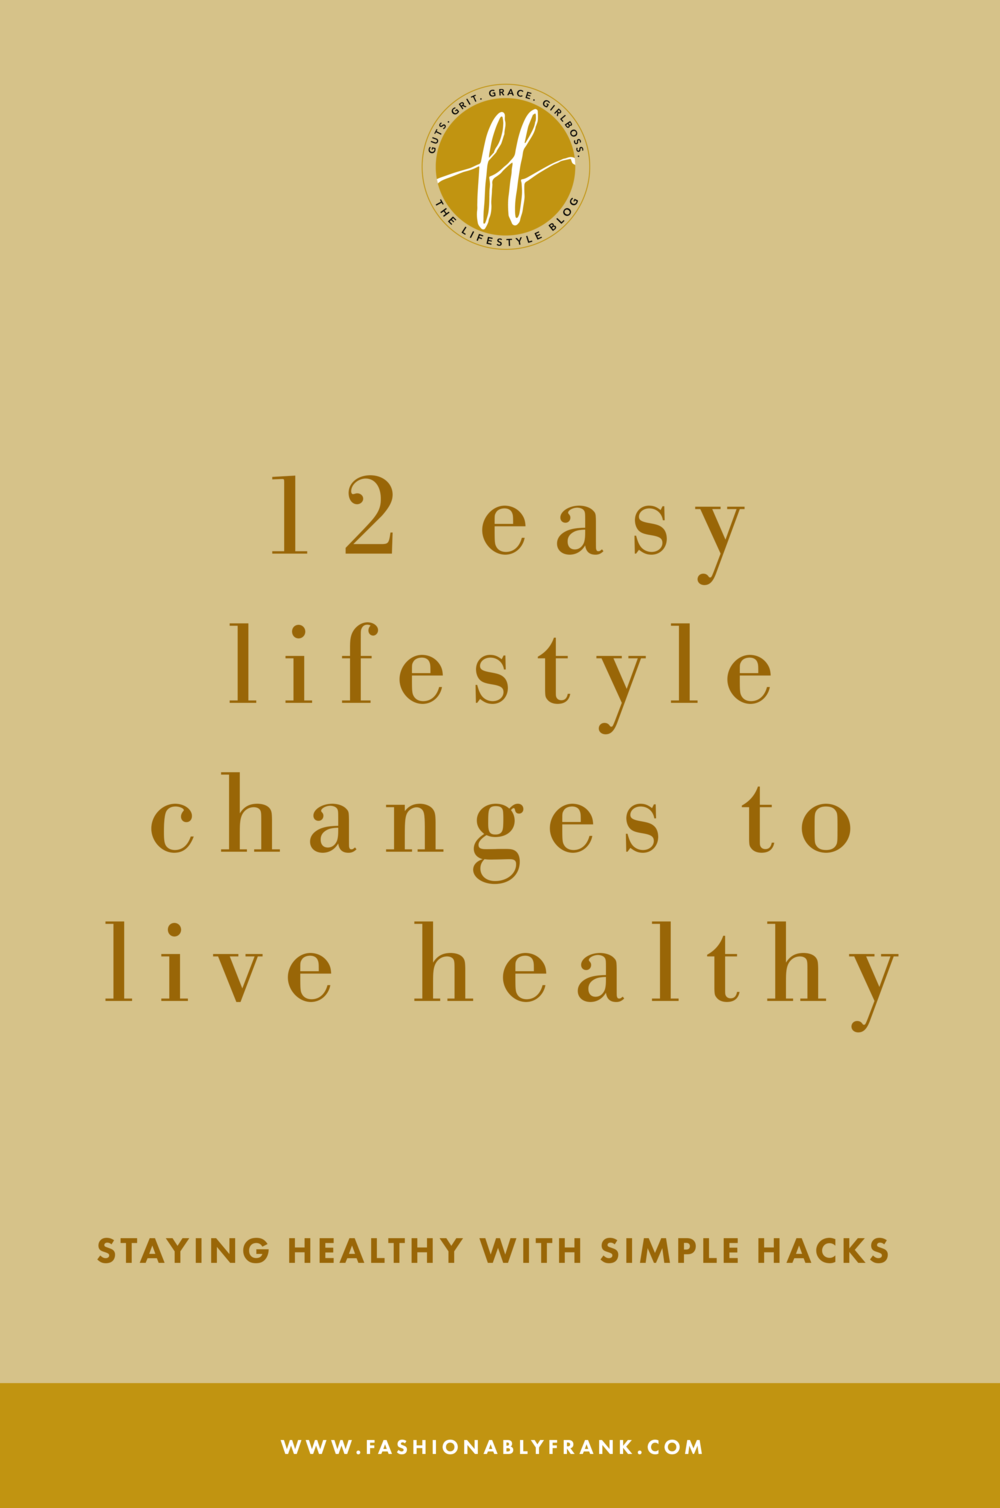 Easy Lifestyle Changes to Lead a Healthier Life